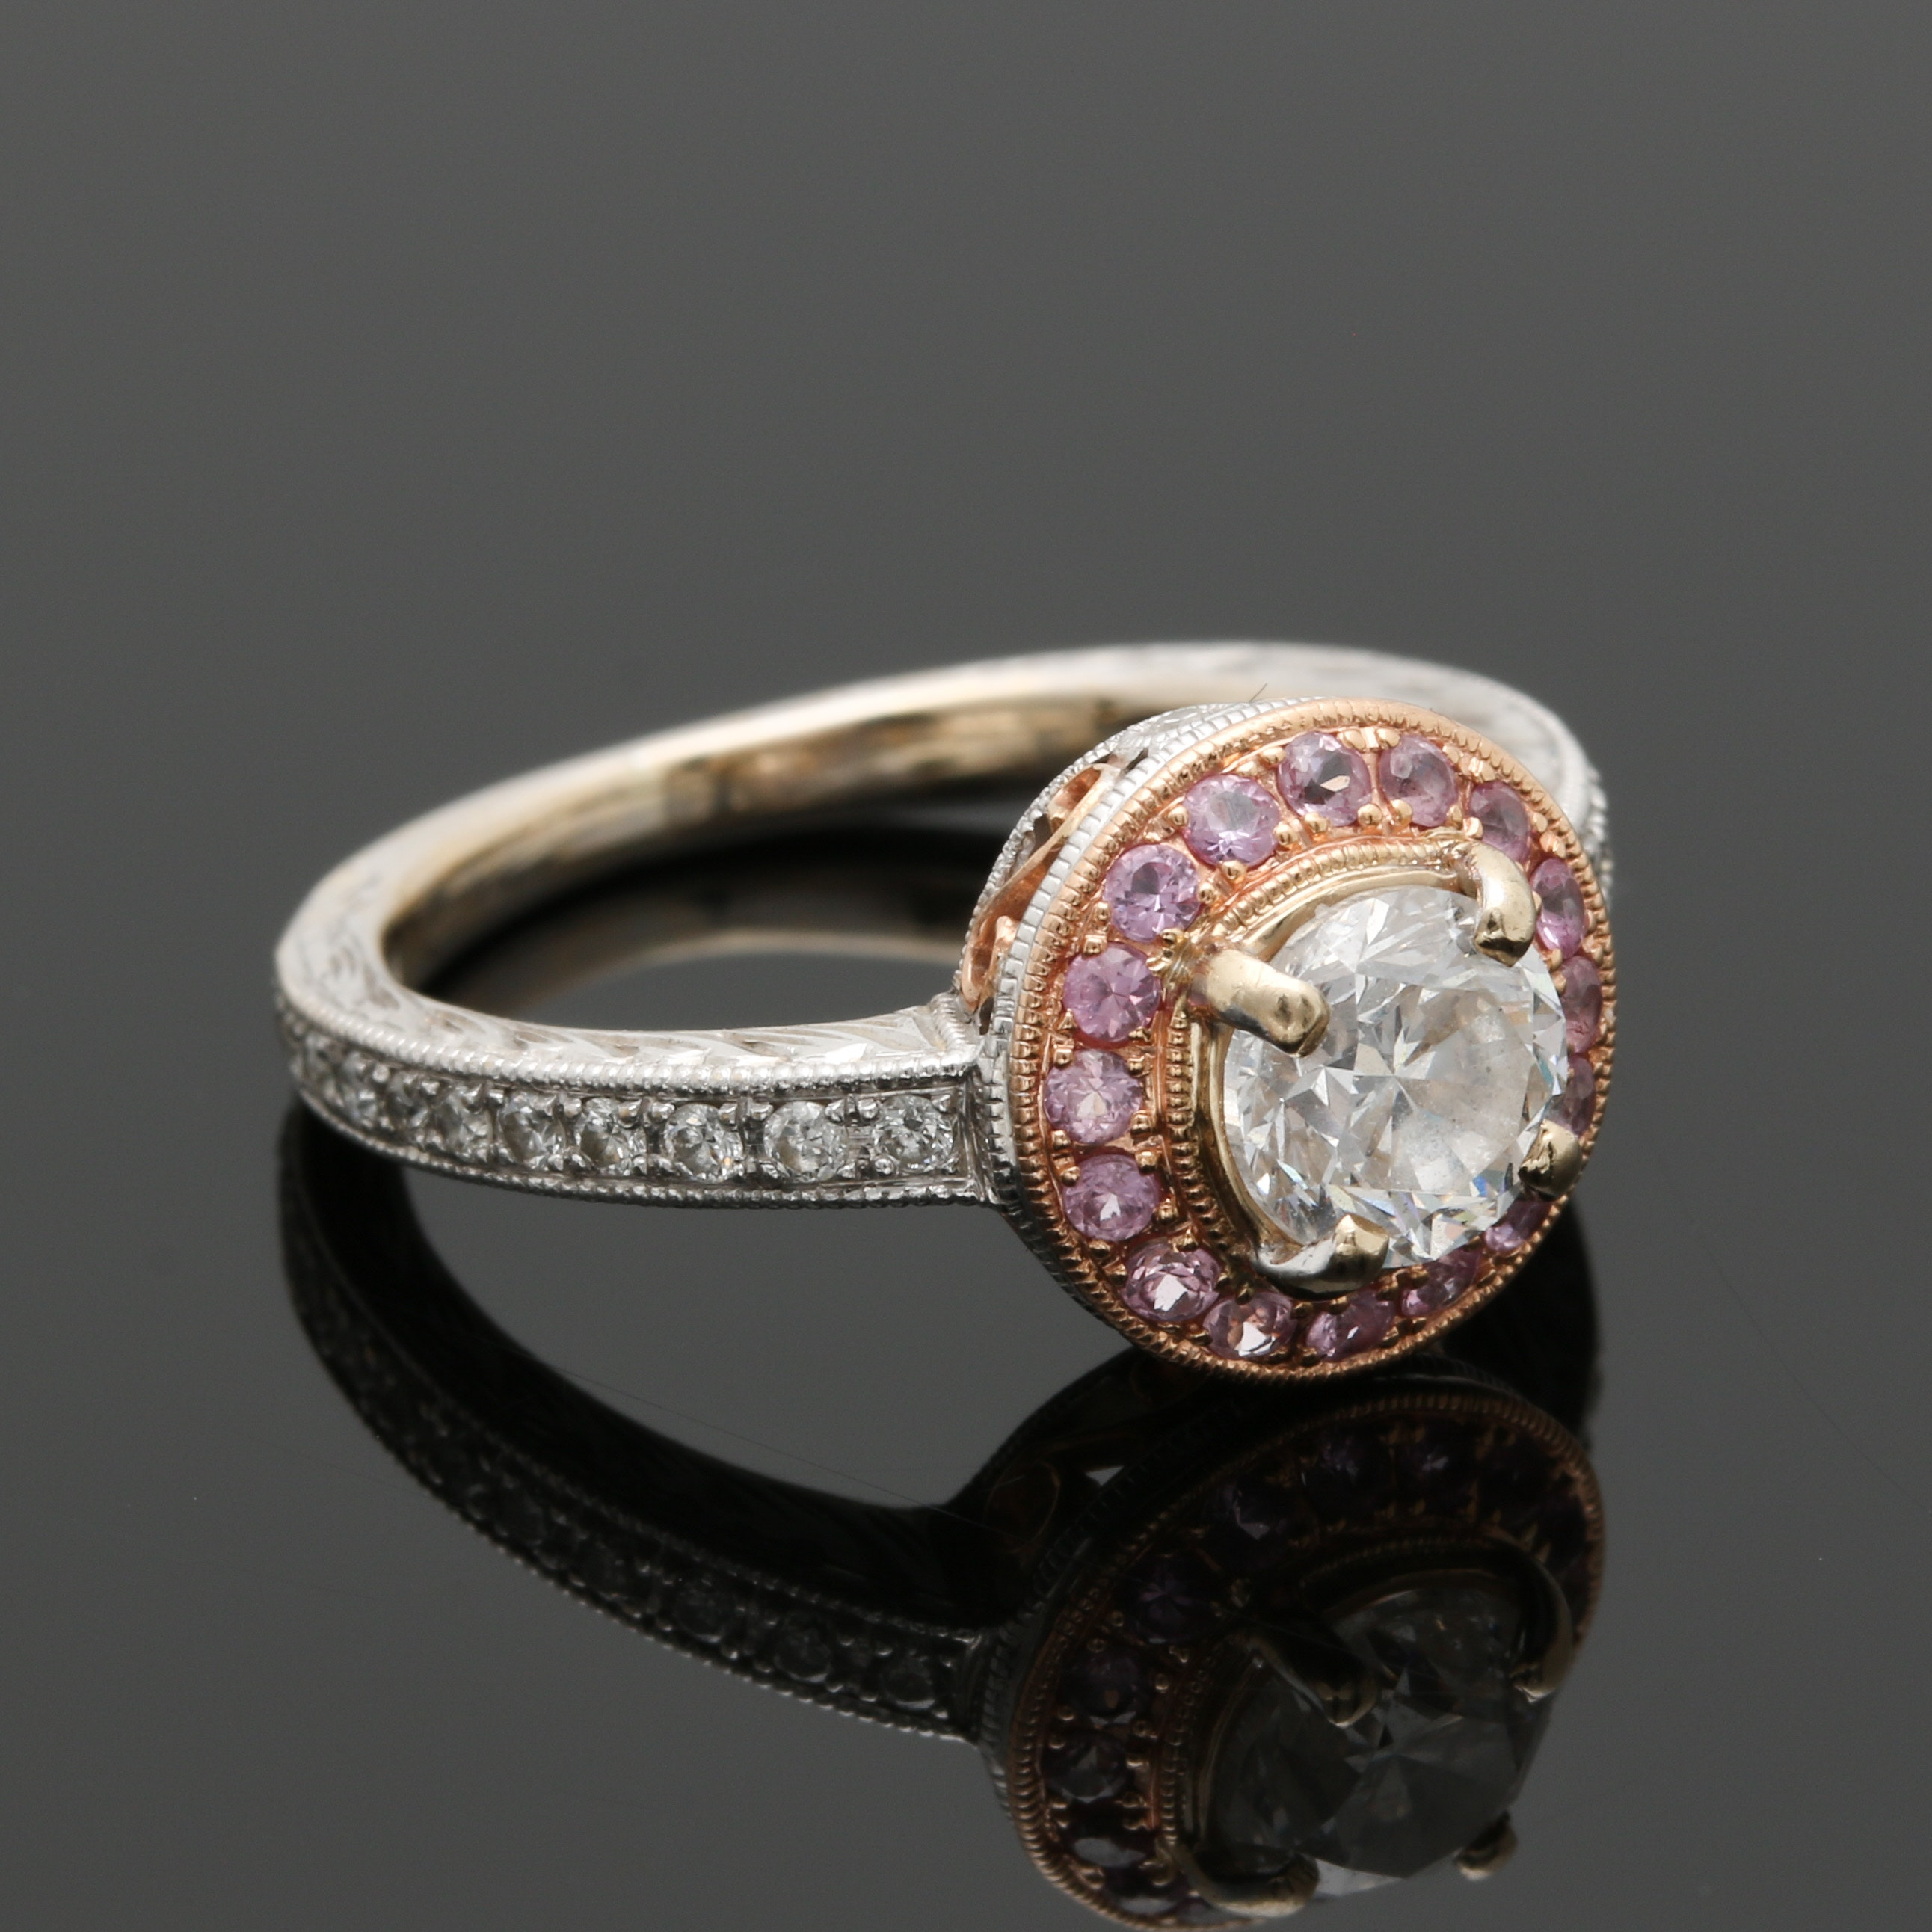 18K White and Rose Gold Diamond and Pink Sapphire Ring